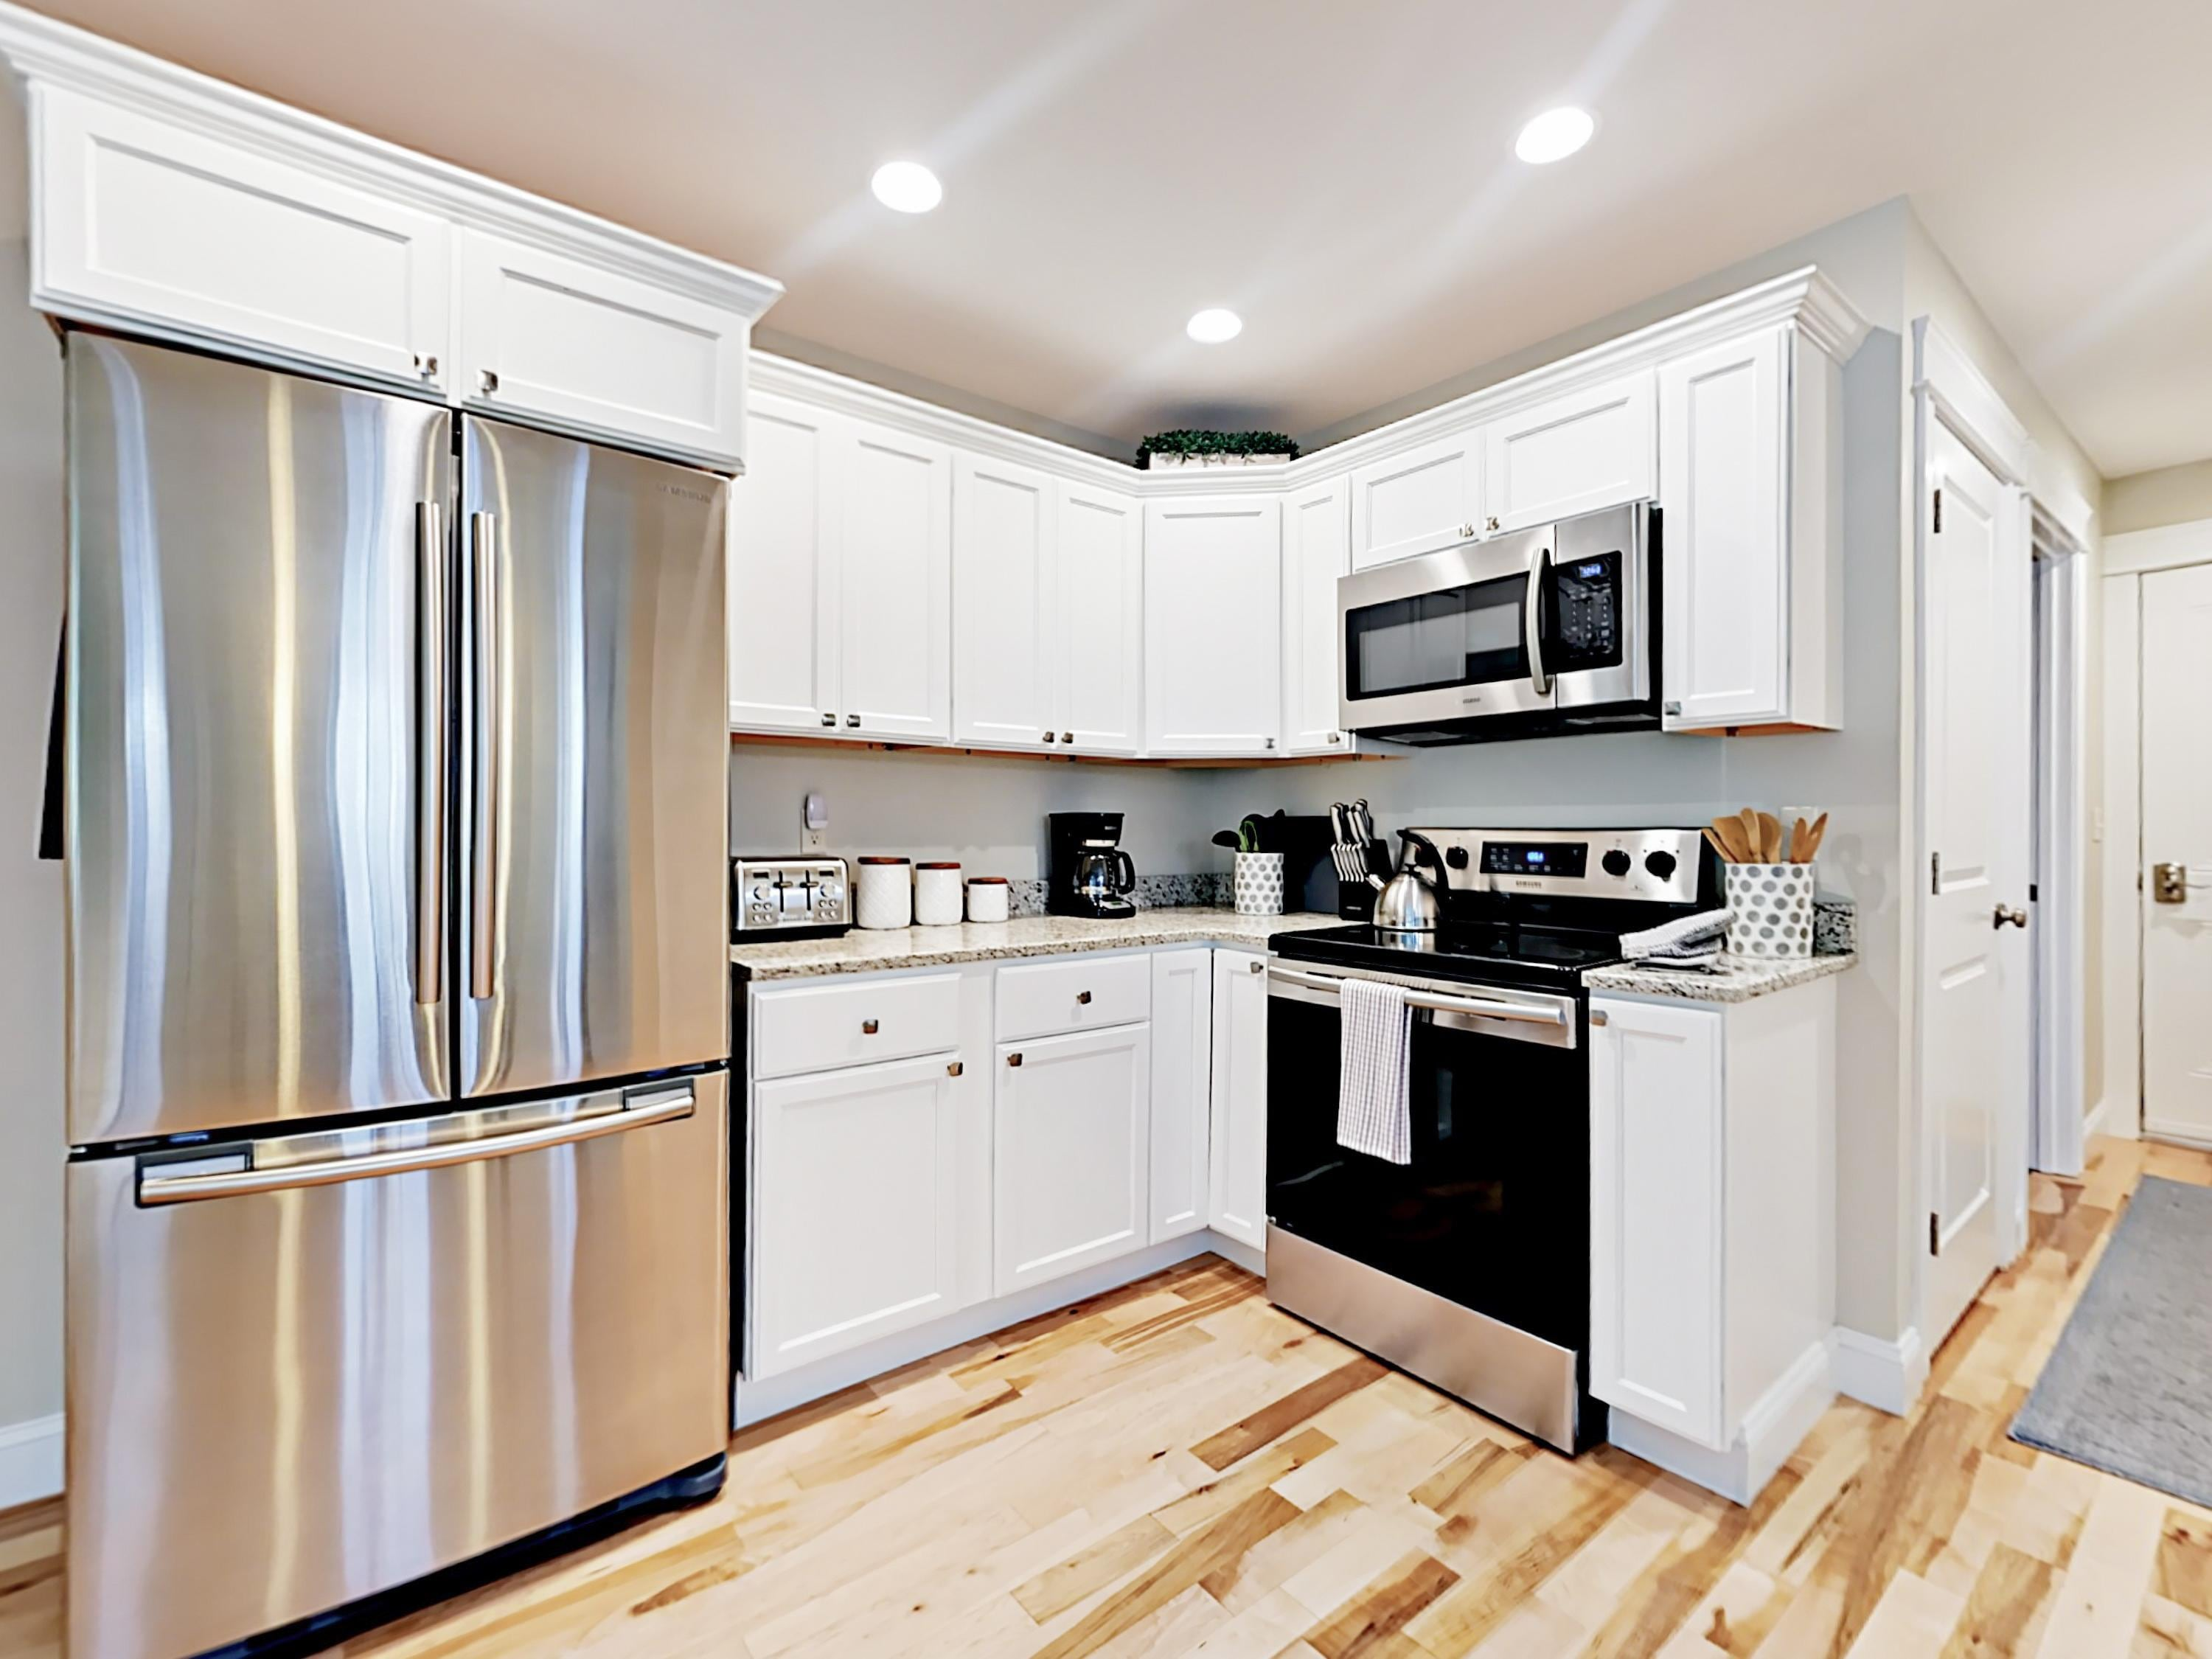 Stainless steel appliances and granite counters line the kitchen. TurnKey provides a starter supply of dish soap and paper towels.